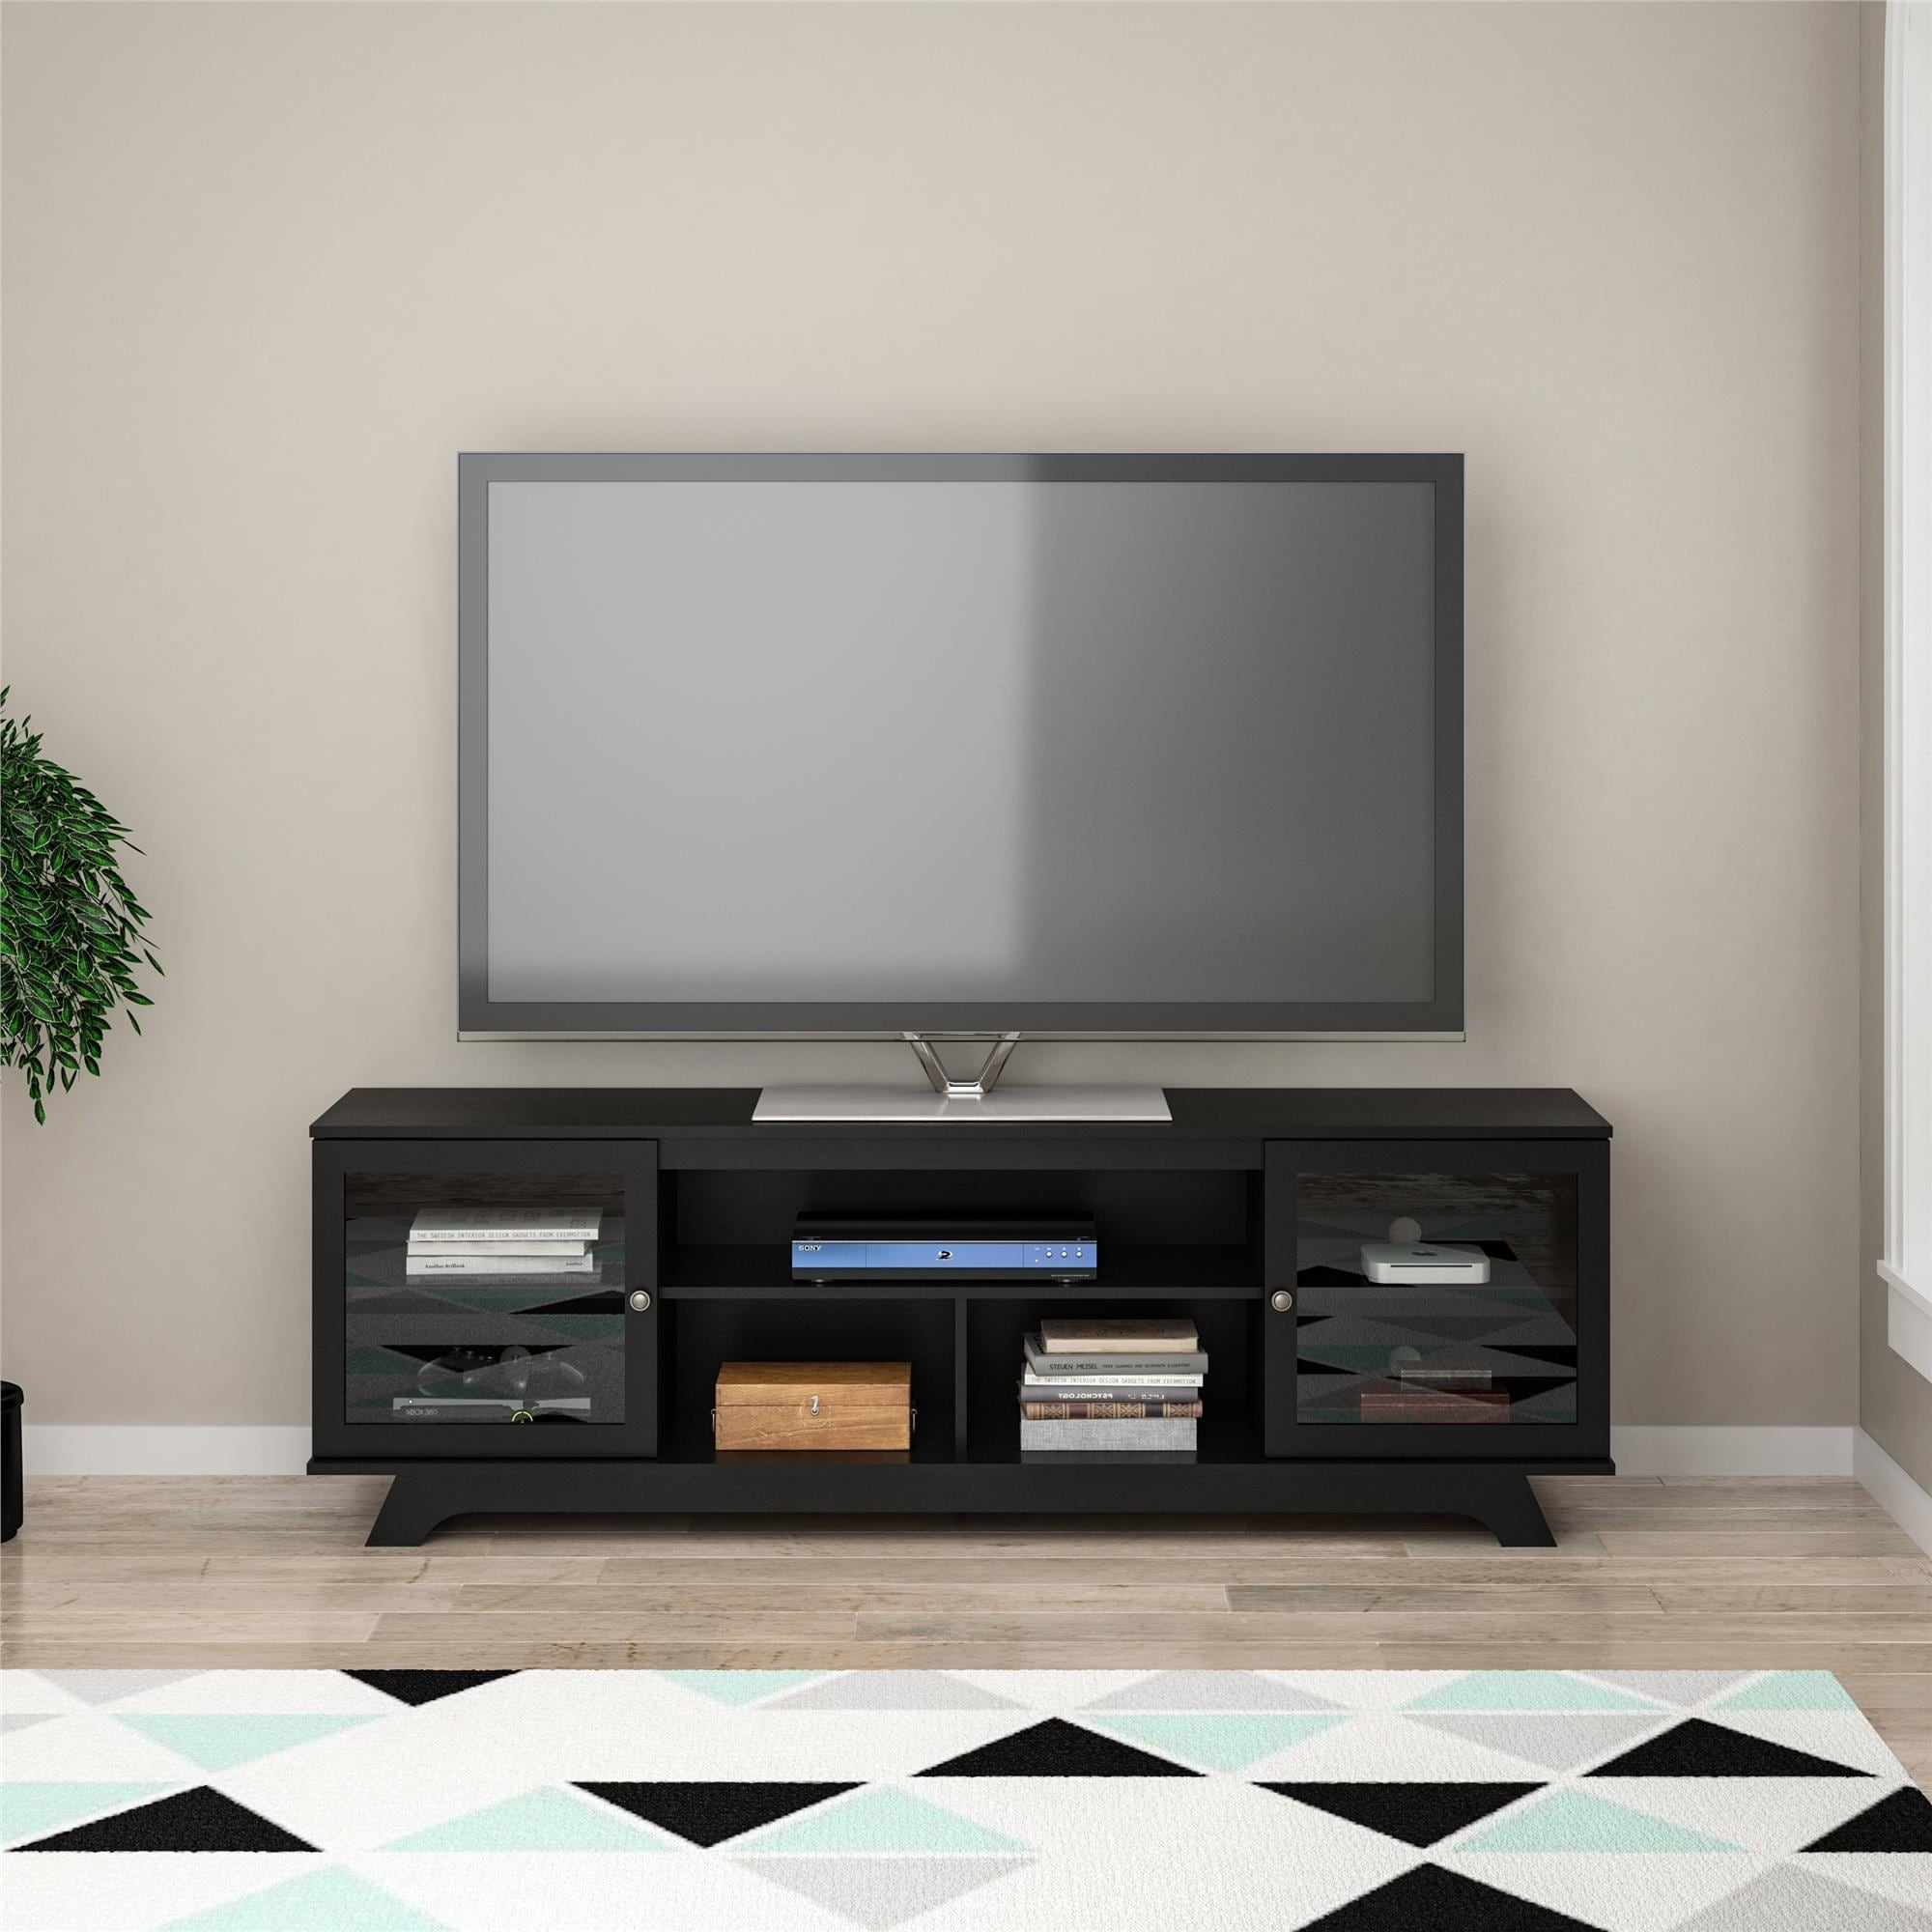 Shop avenue greene ehrhart tv stand for tvs up to 80 free shipping today overstock com 25447006